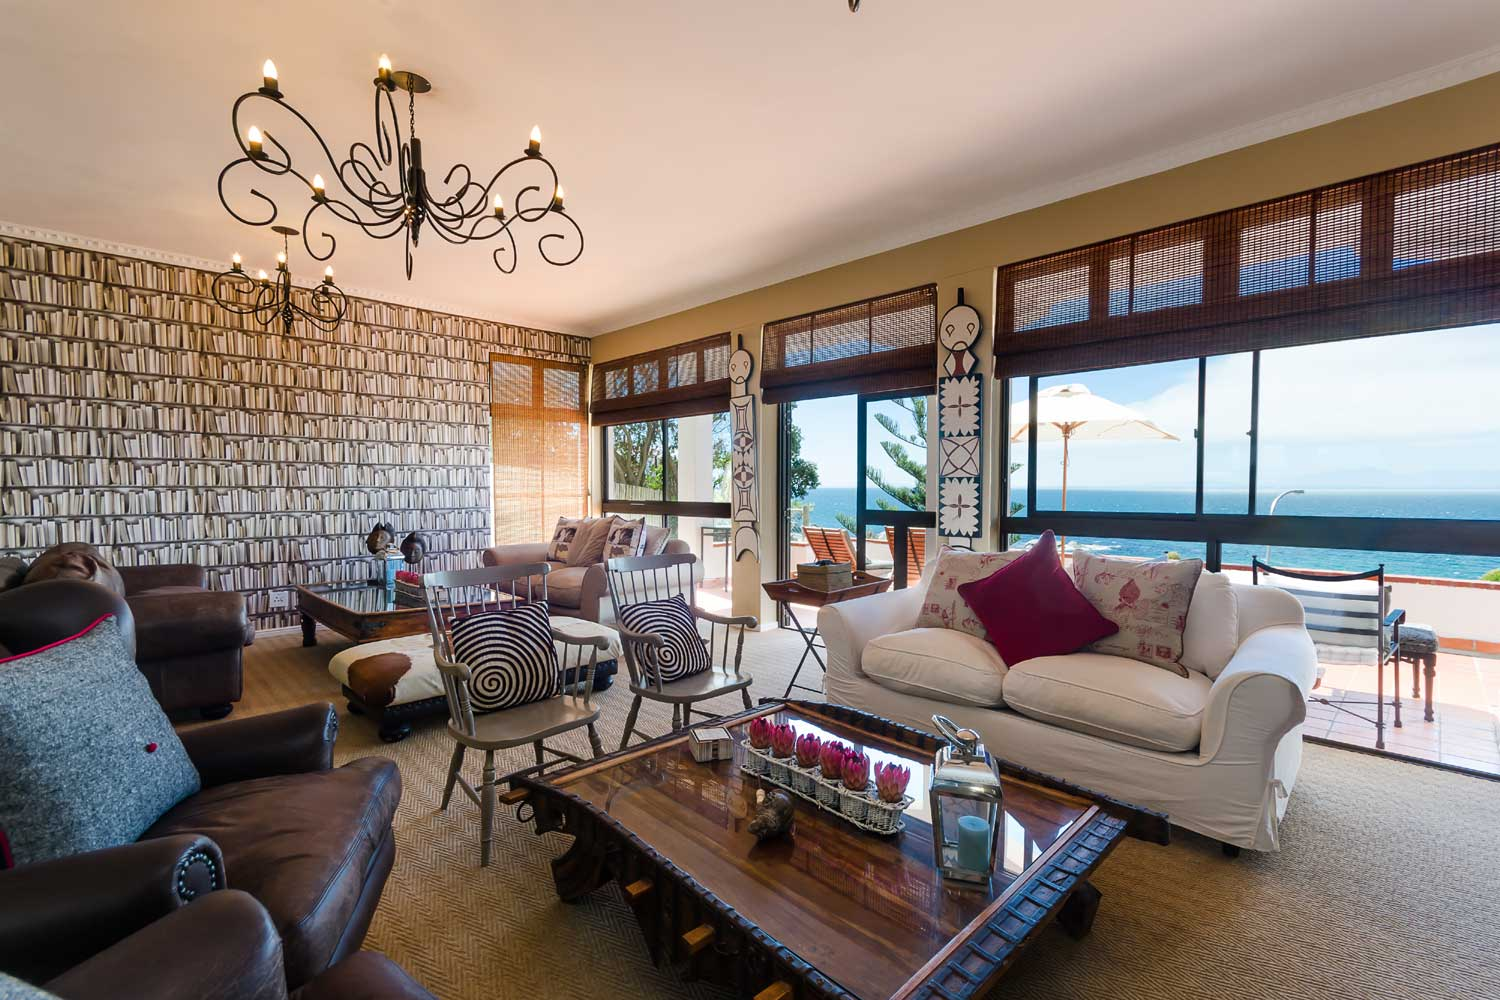 <b>Cape Town, Western Cape, South Africa</b><br/><i>11 Bedrooms, 7,007 sq. ft.</i><br/>Seaside home with views of False Bay